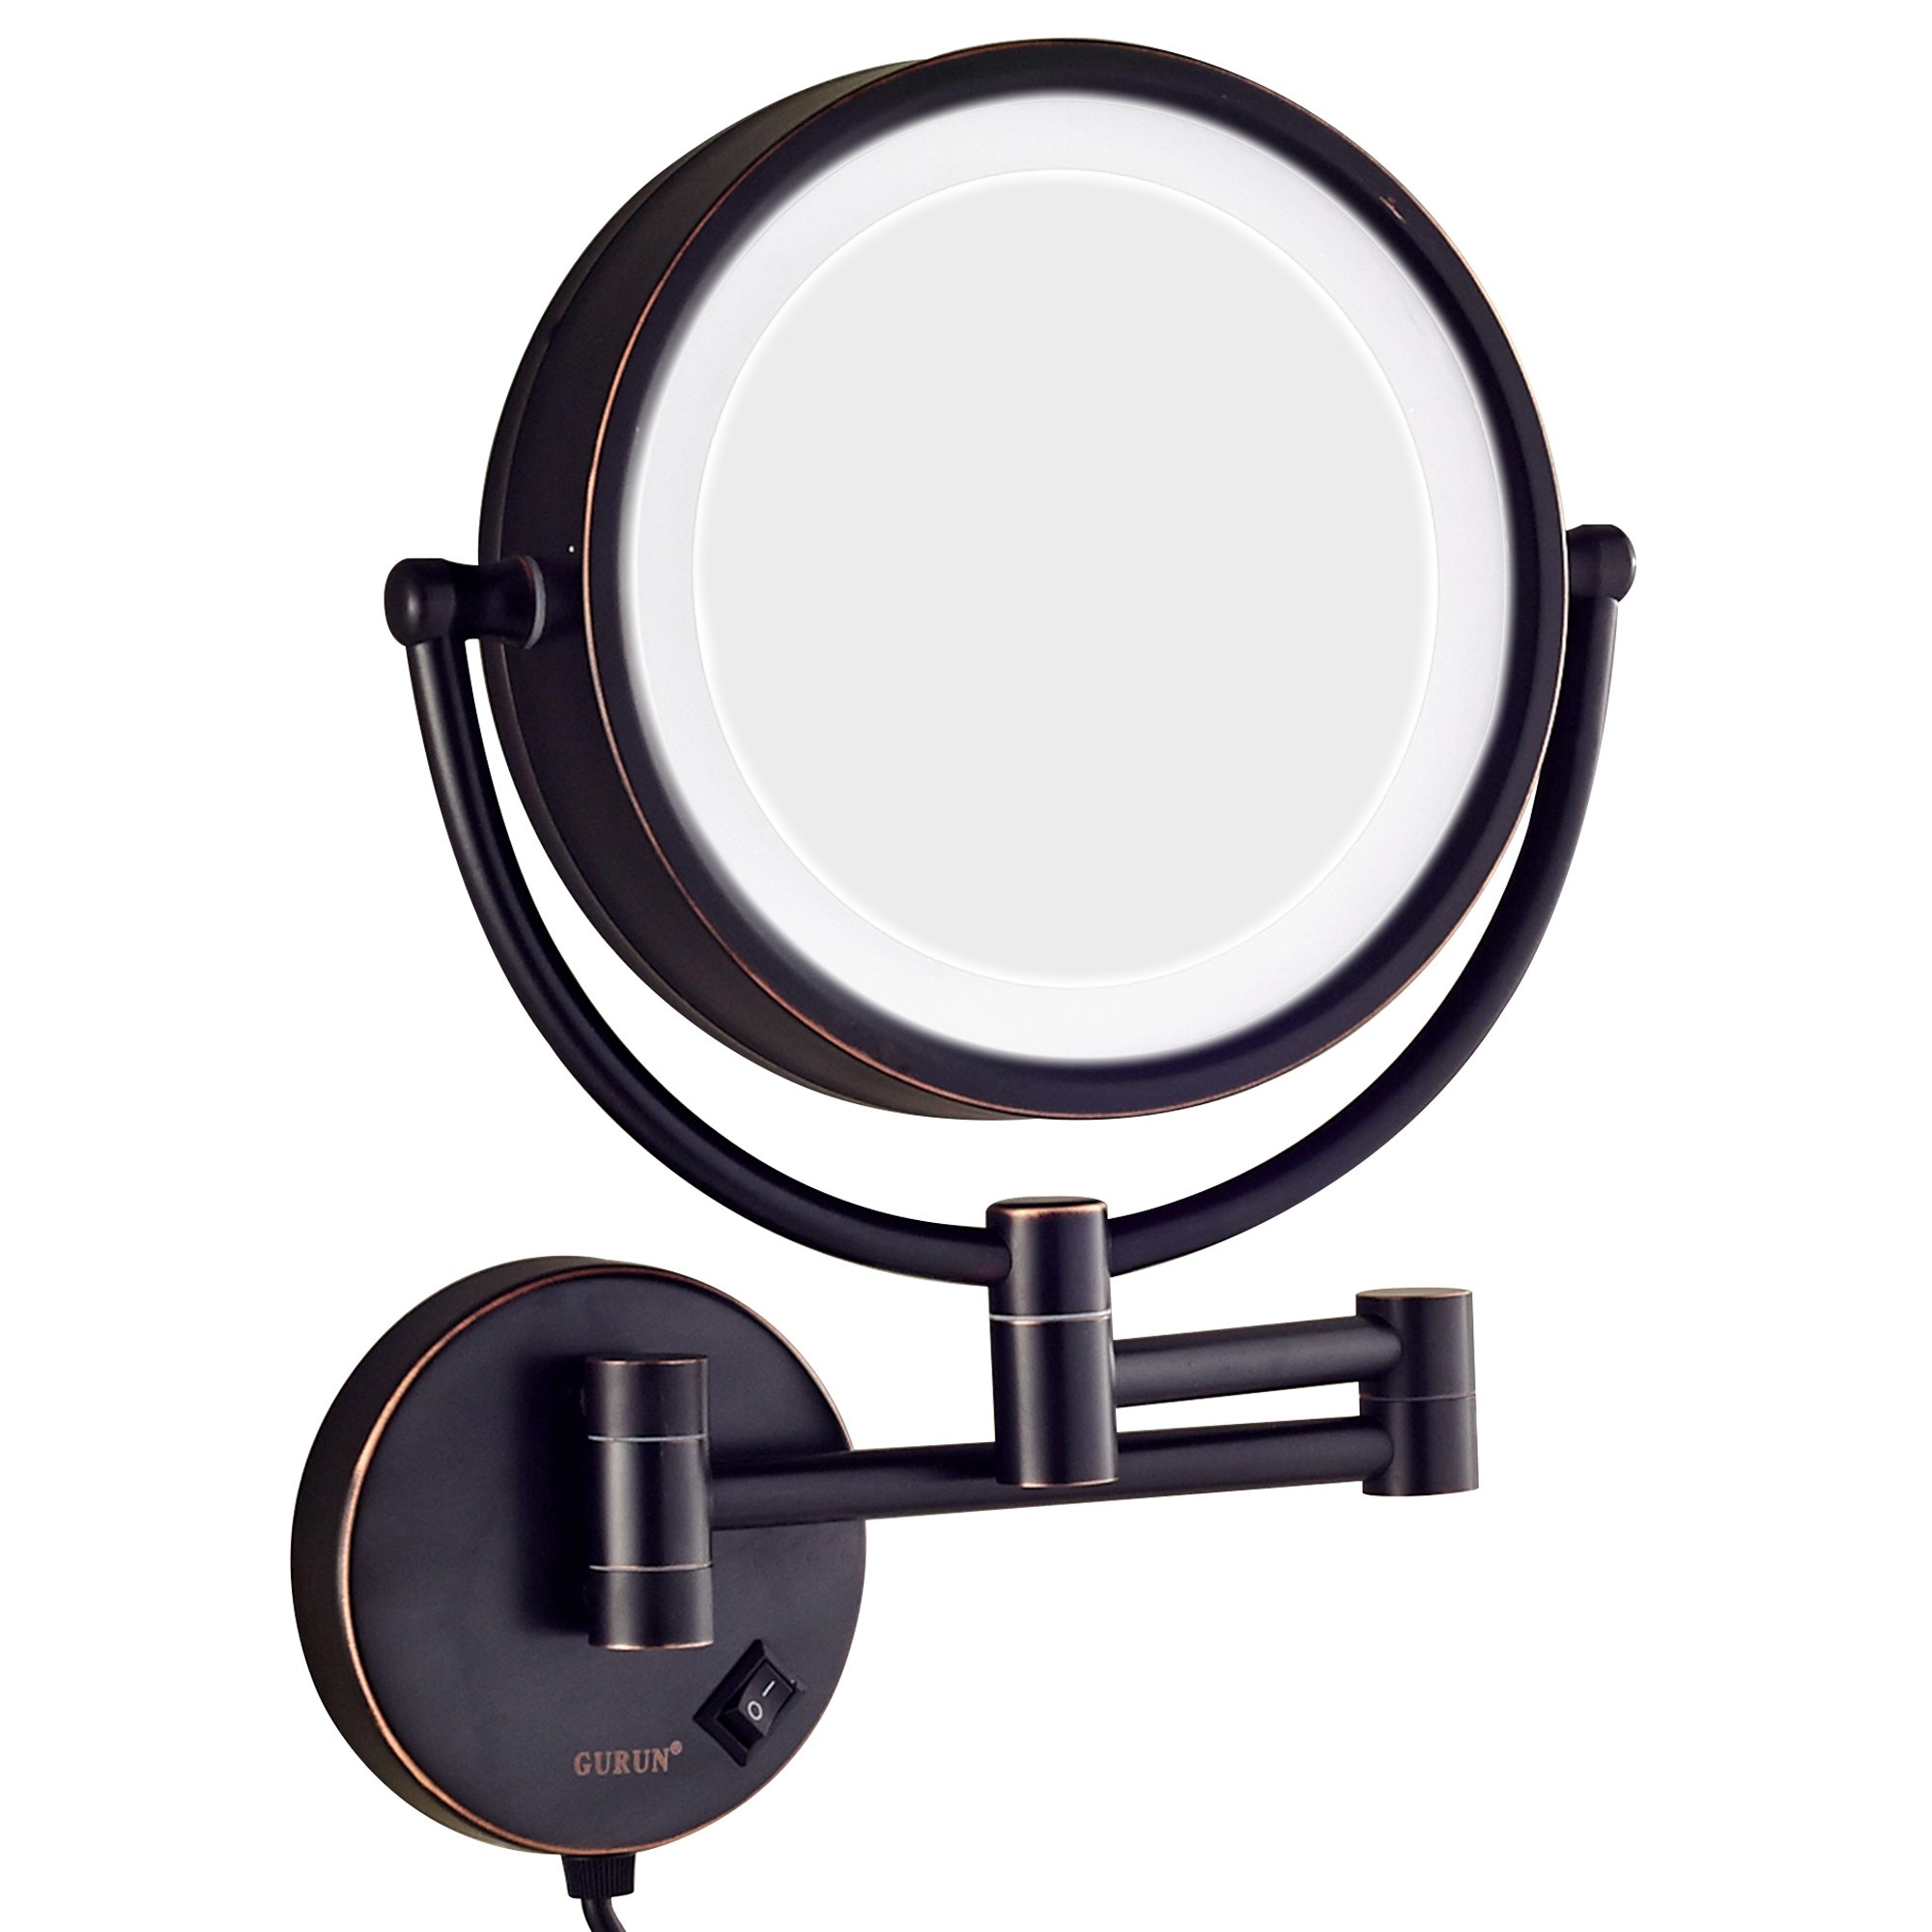 GURUN LED Lighted Wall Mount Makeup Mirror with 10x Magnification,Oil-Rubbed Bronze Finish, 8.5 Inch, BRASS,M1809DO(8.5in,10x) by GURUN (Image #3)